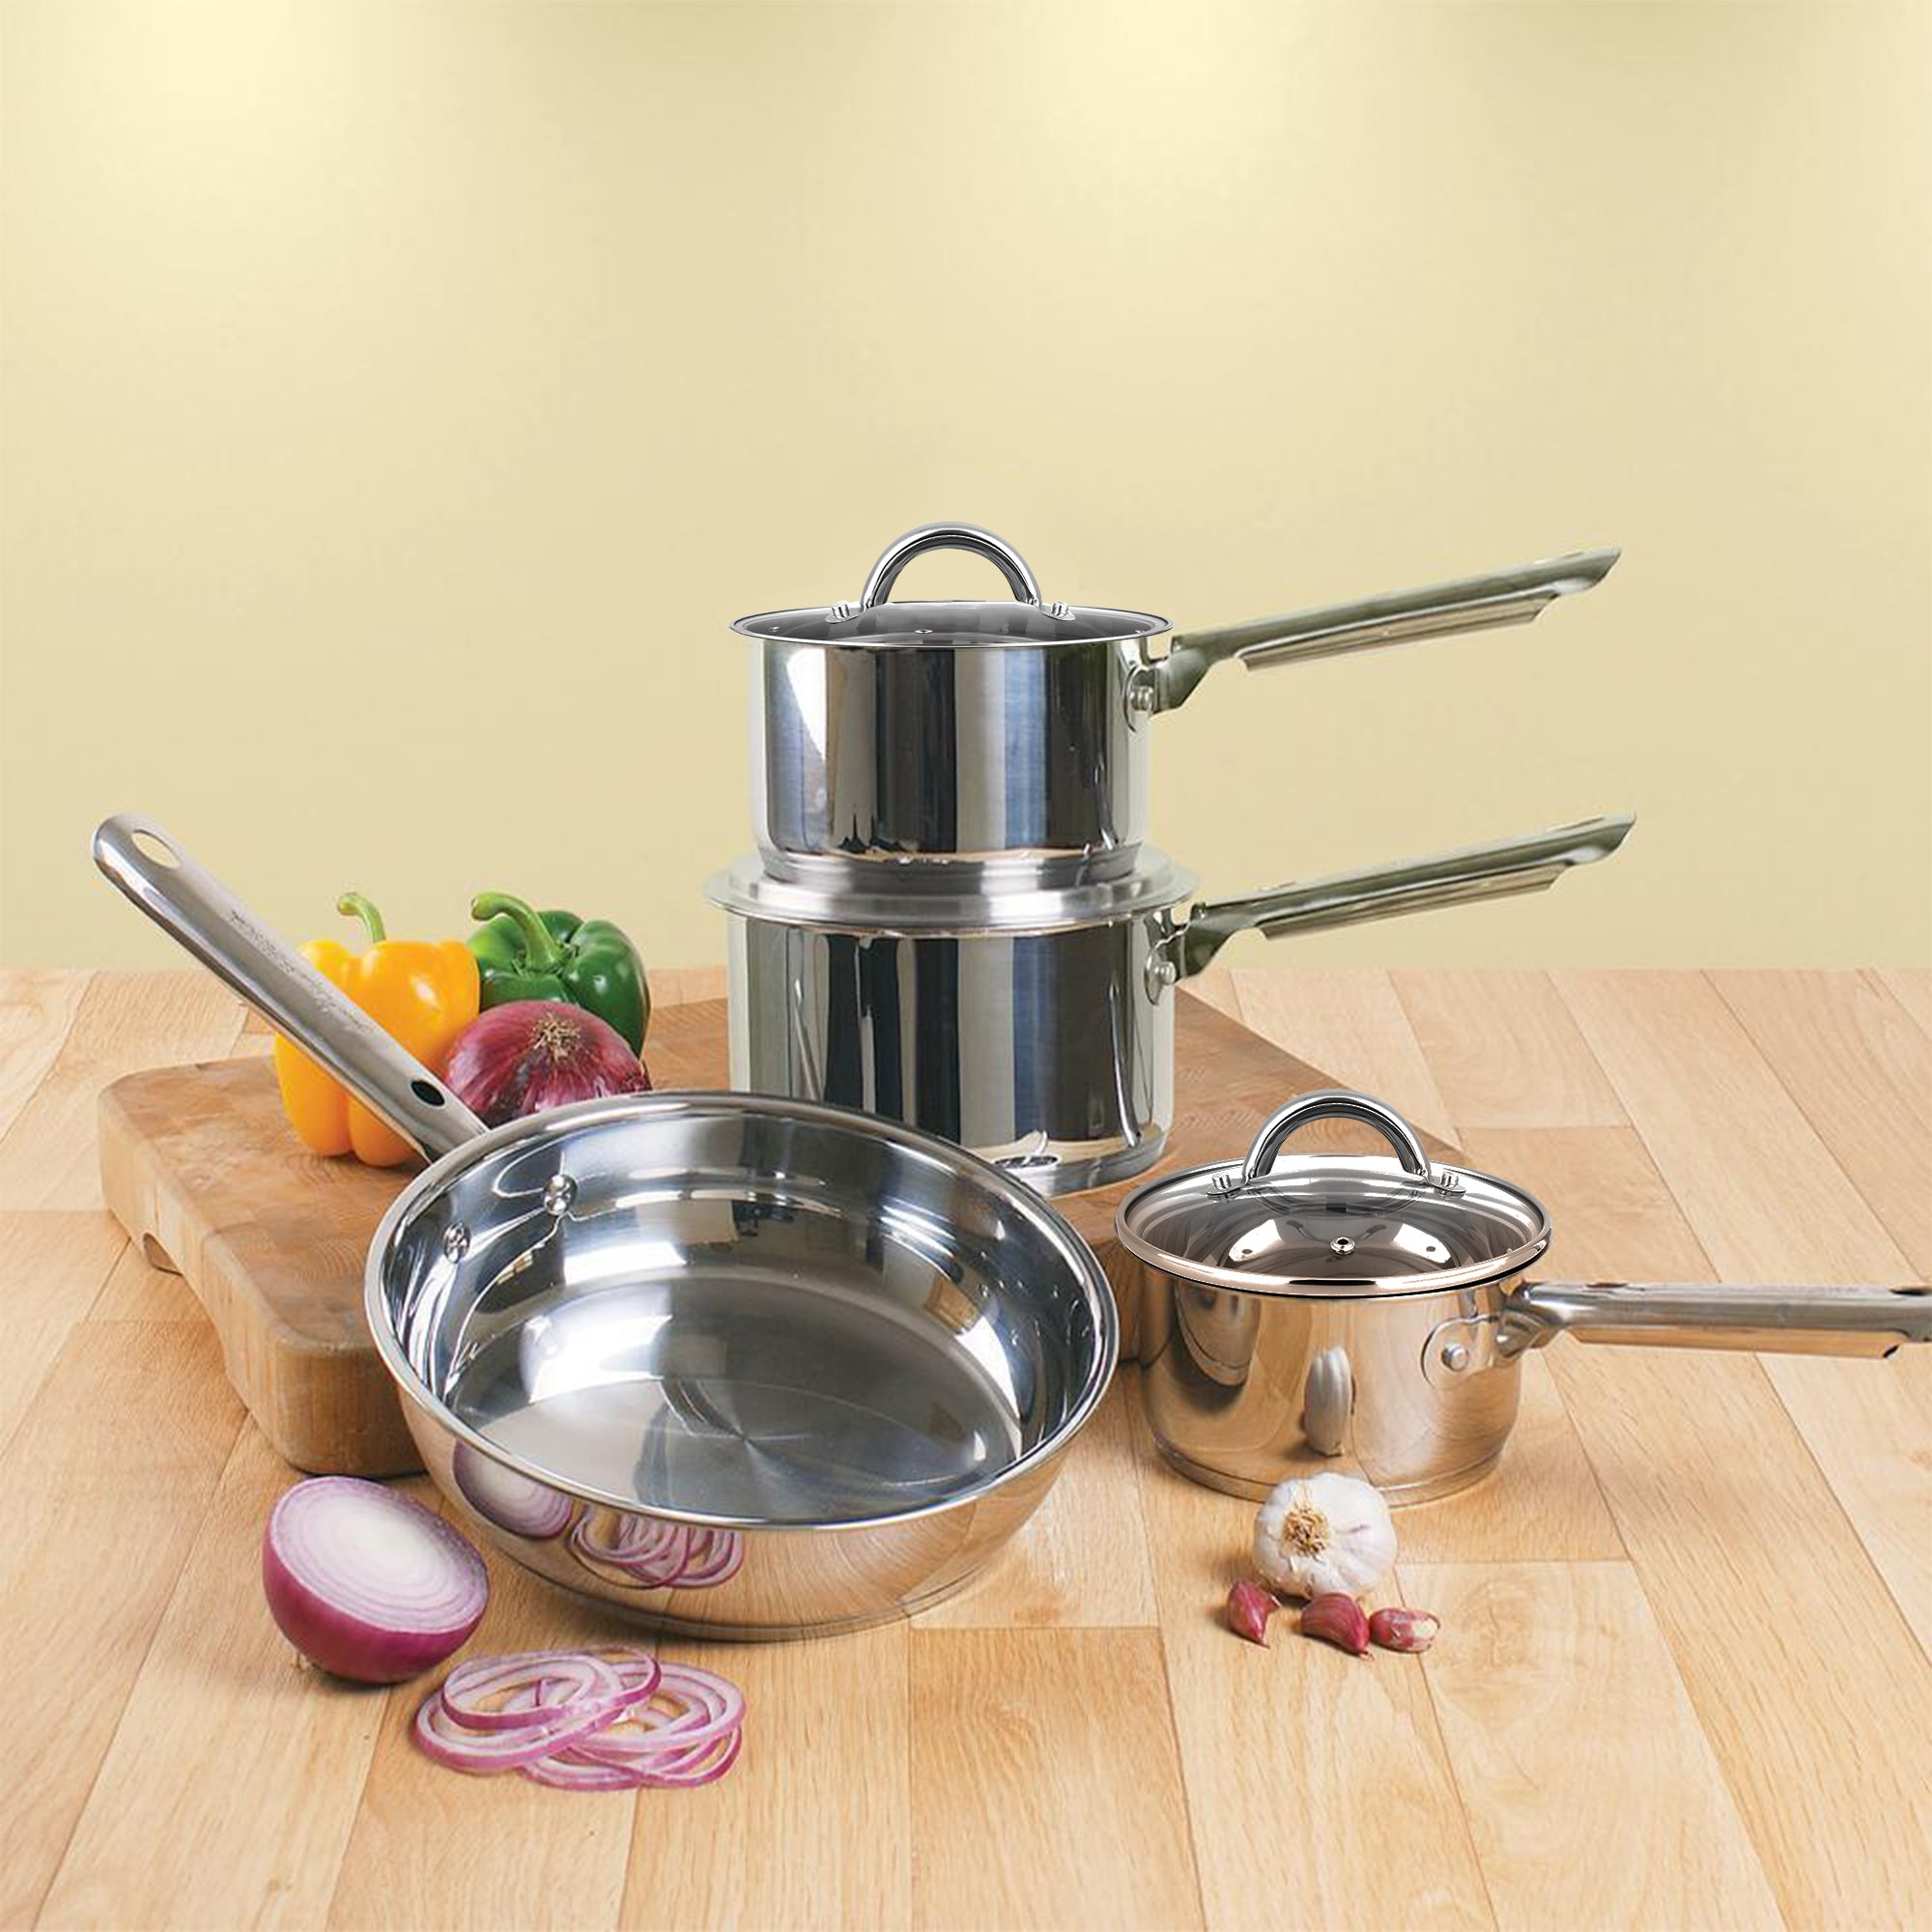 Professional Cookware 6-Piece Set